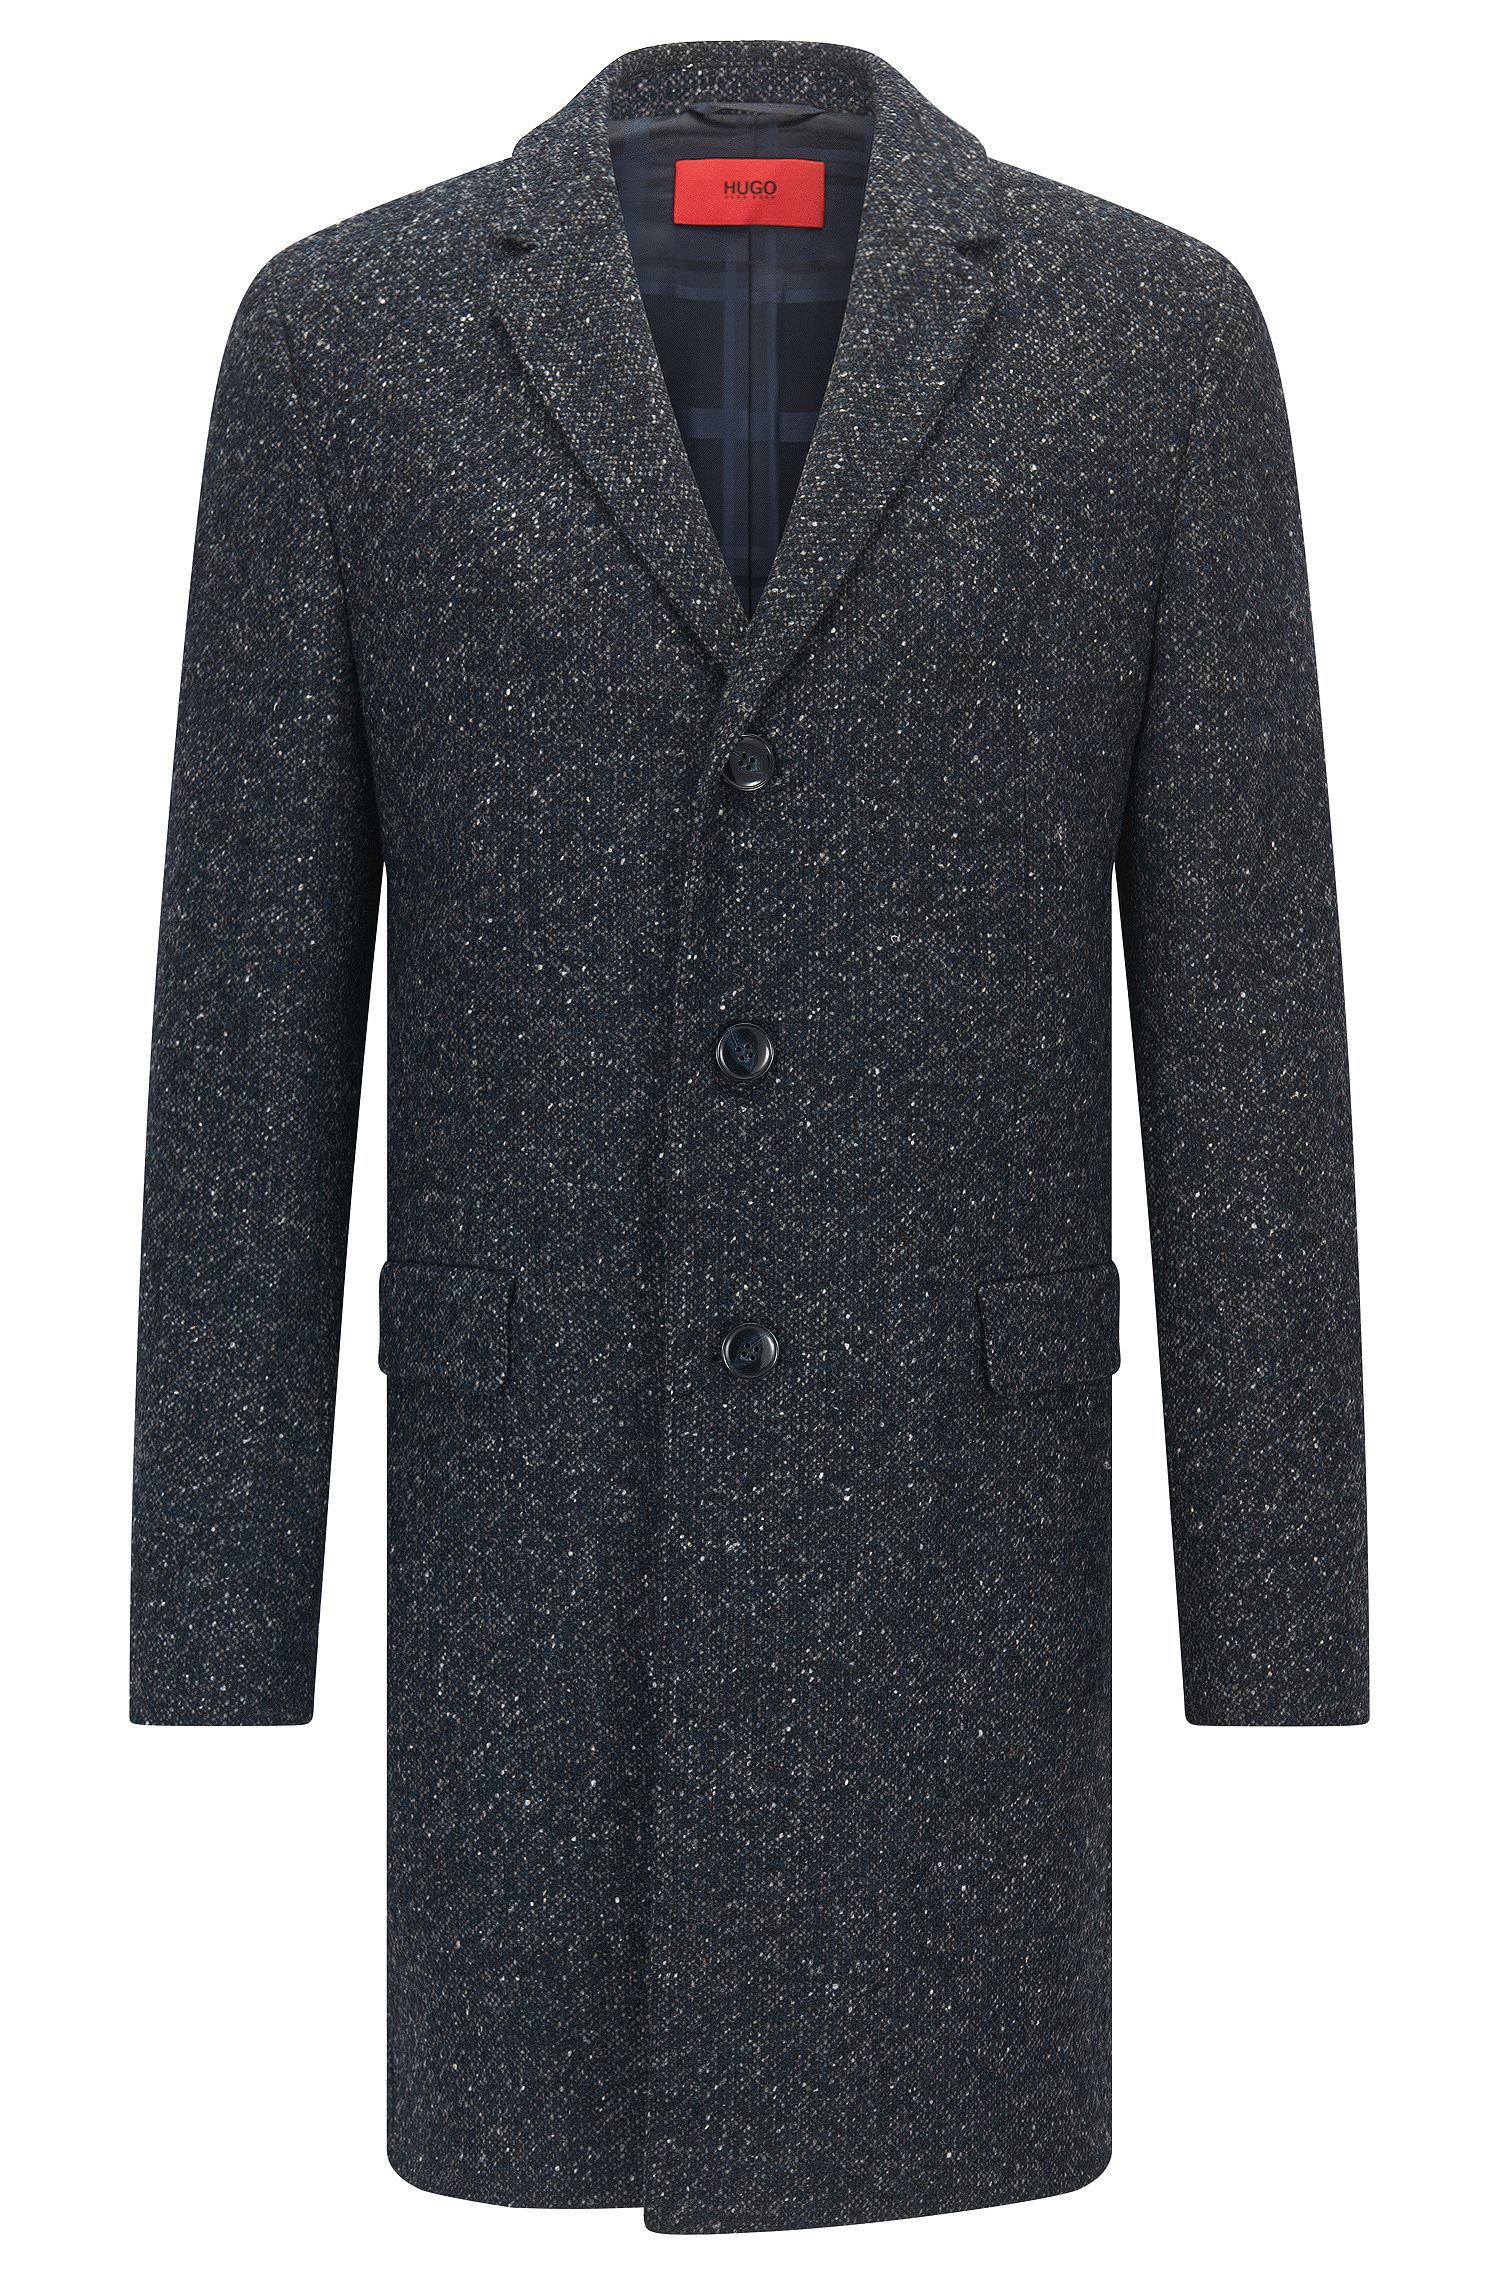 Slim-fit coat in a flecked wool blend